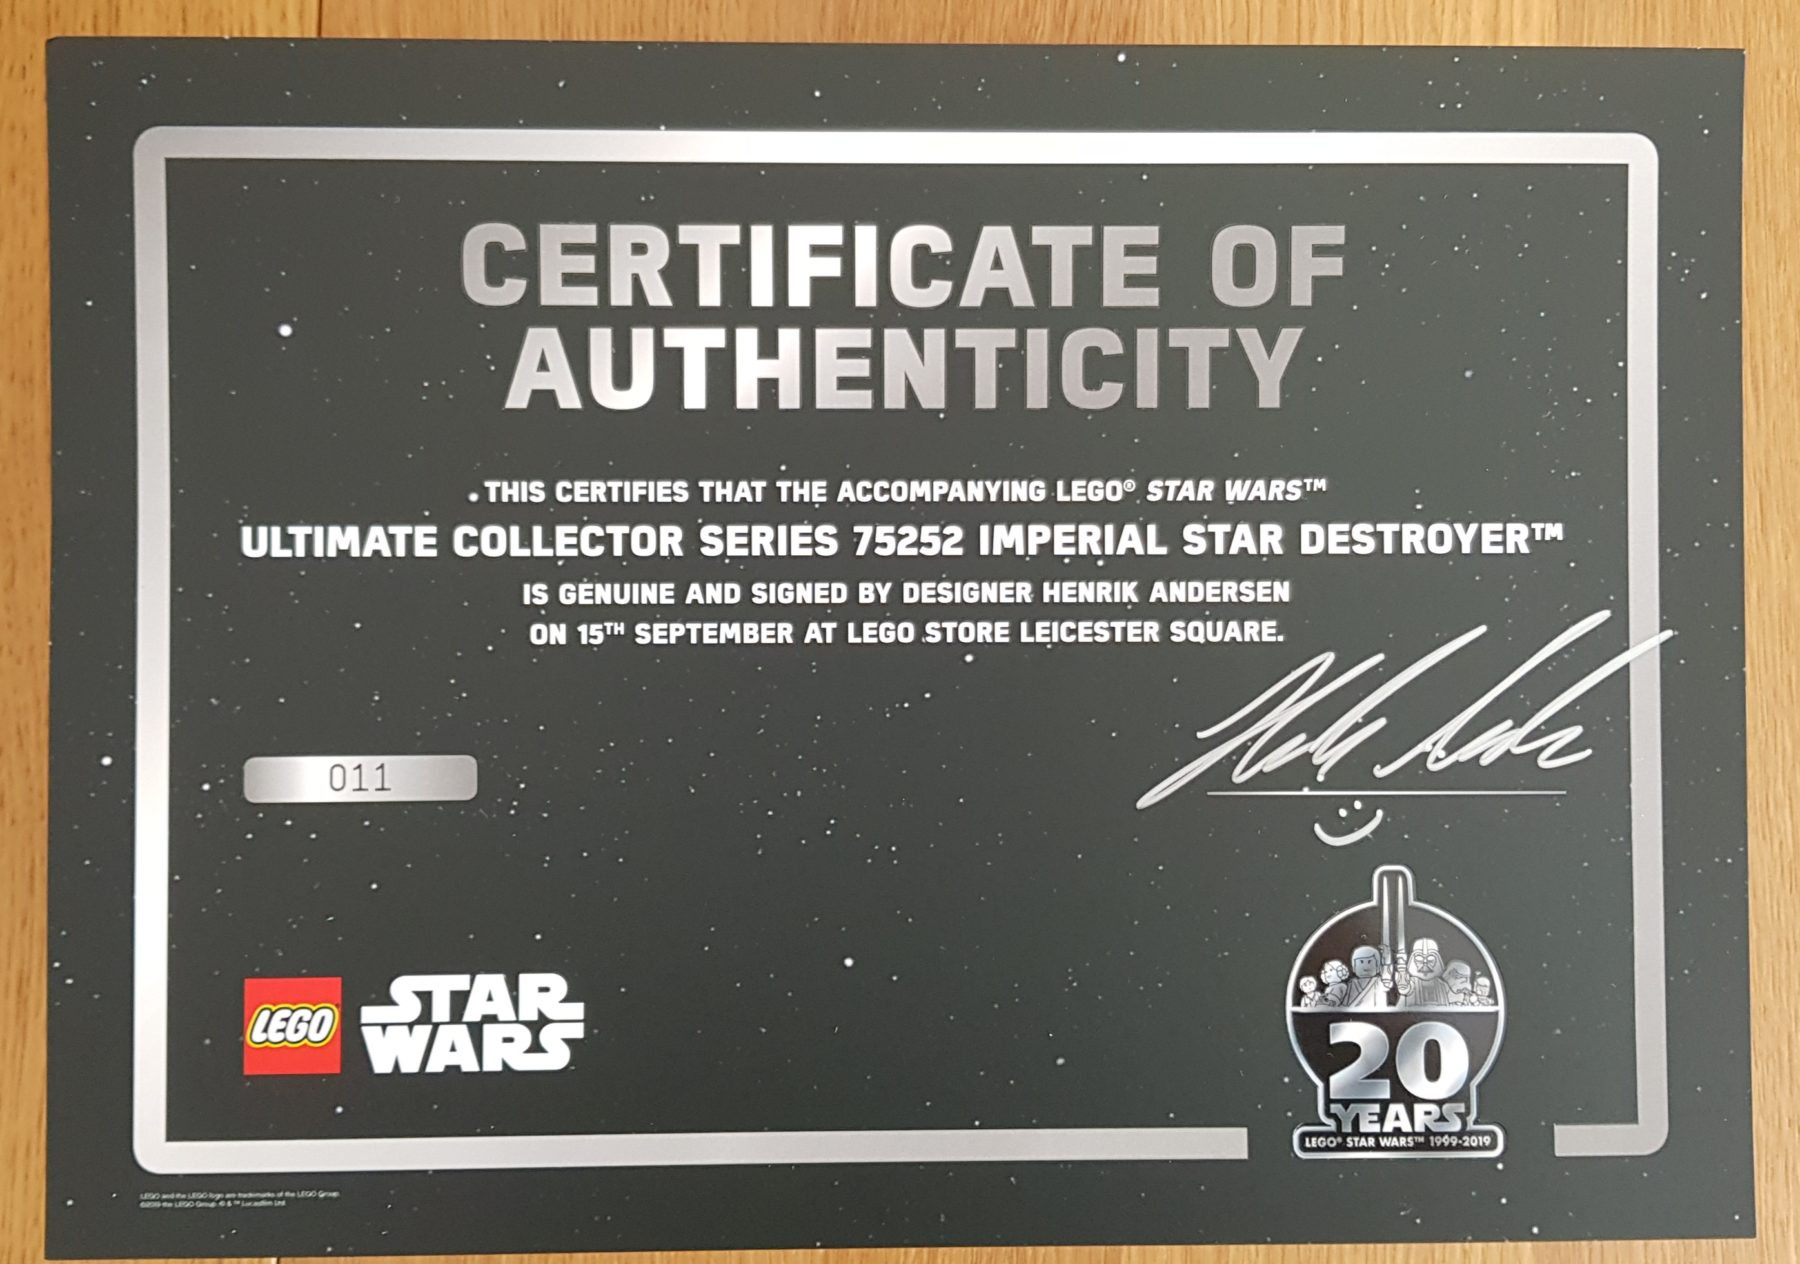 LEGO 75252 Certificate of Authenticity